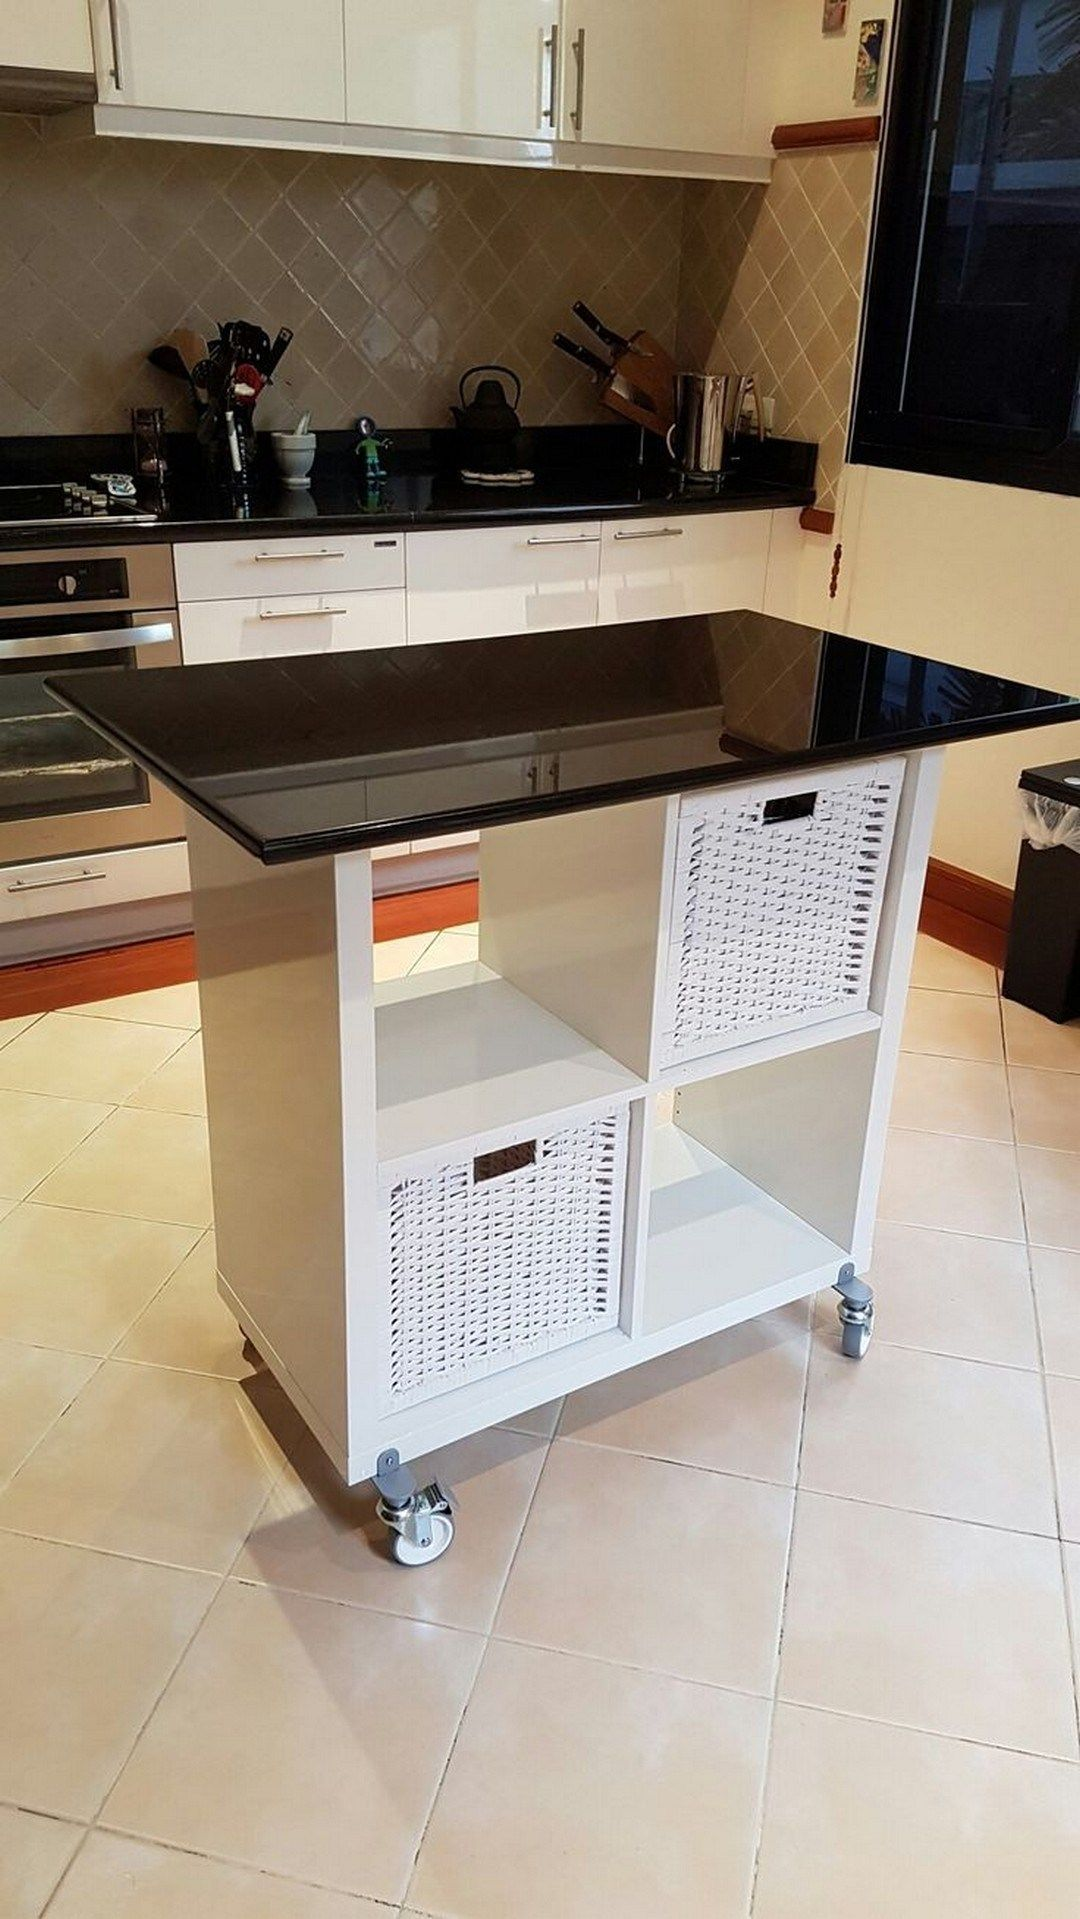 54 absolutely brilliant small kitchen island diys 9 2020 diy furniture hacks ikea kitchen on kitchen island ideas diy ikea hacks id=73670